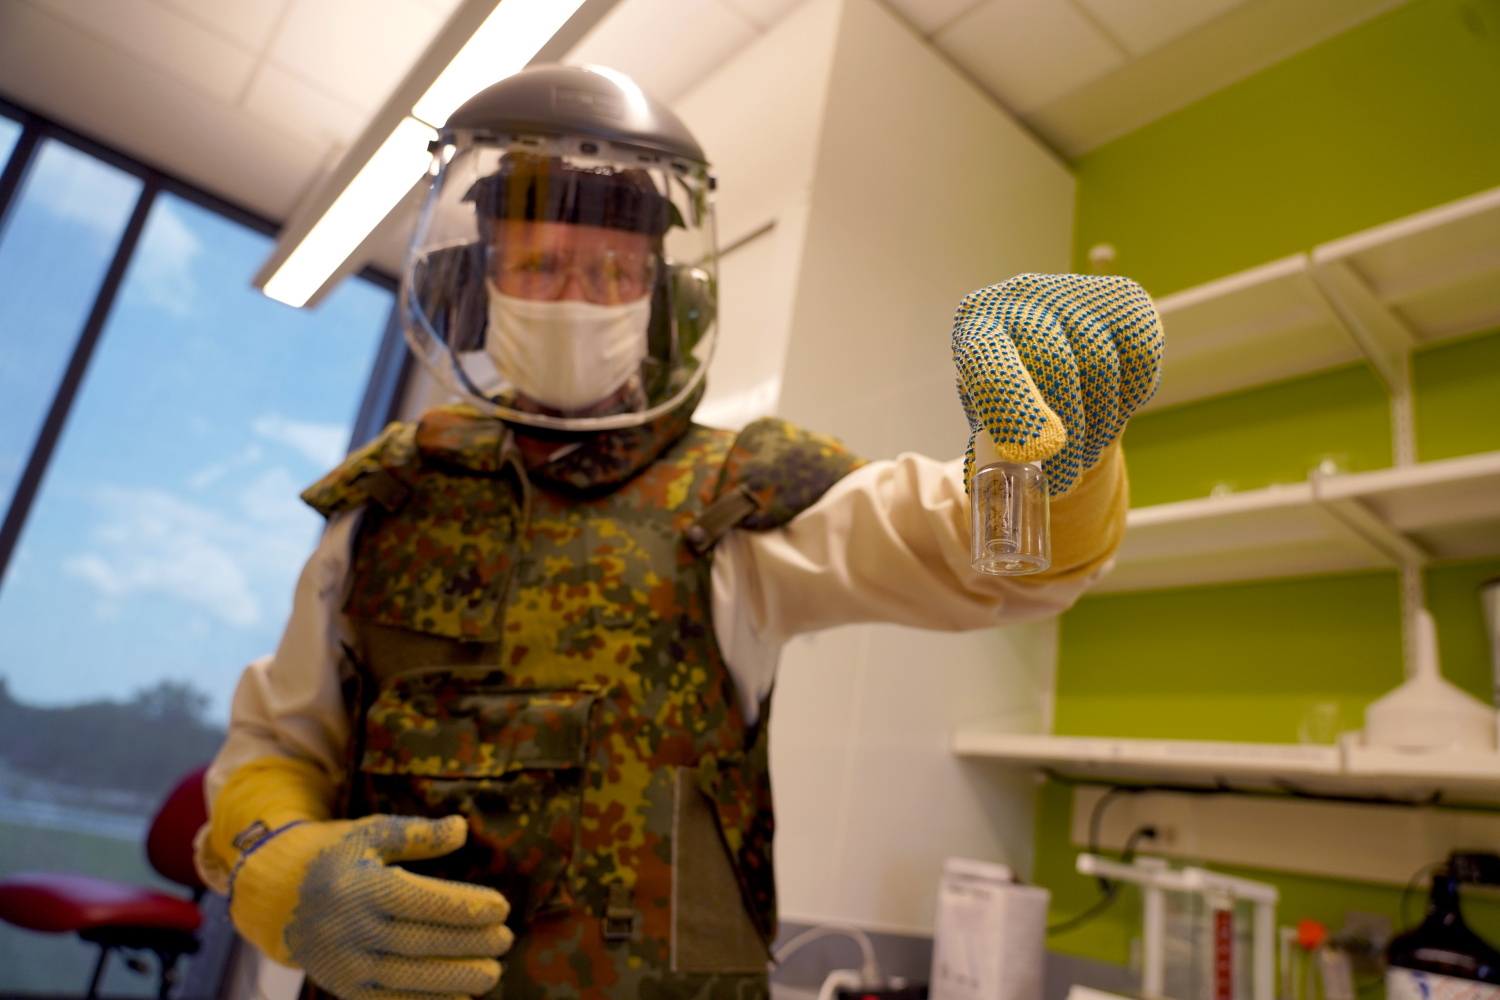 Purdue scientist and Ph.D. candidate Matthew Gettings works on the Army project in protective gear.